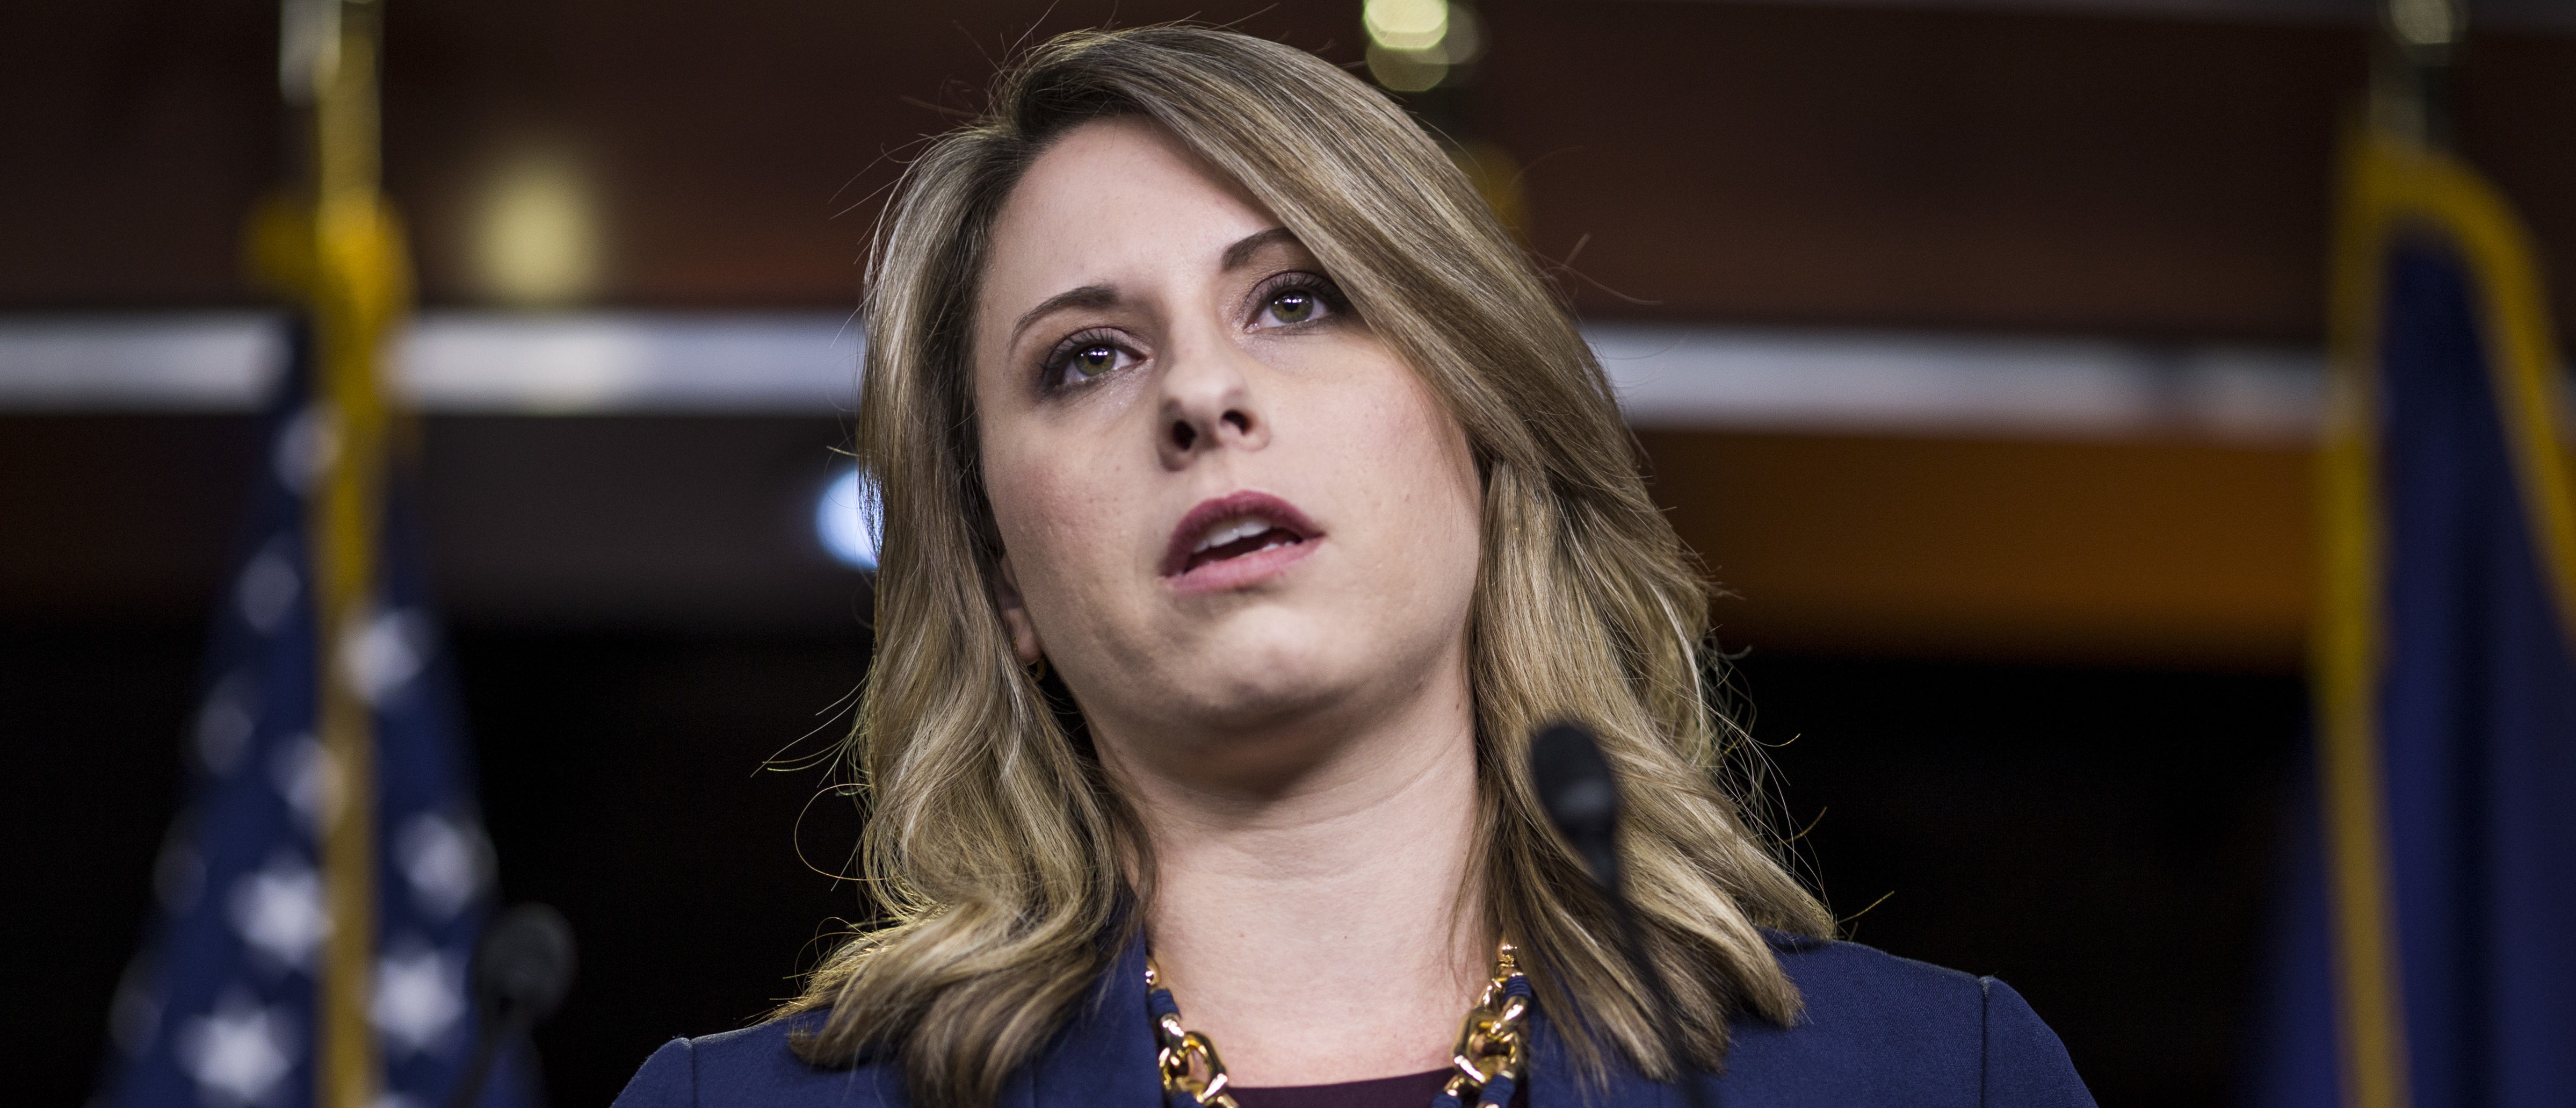 Rep. Katie Hill is pictured. (Zach Gibson/Getty Images)